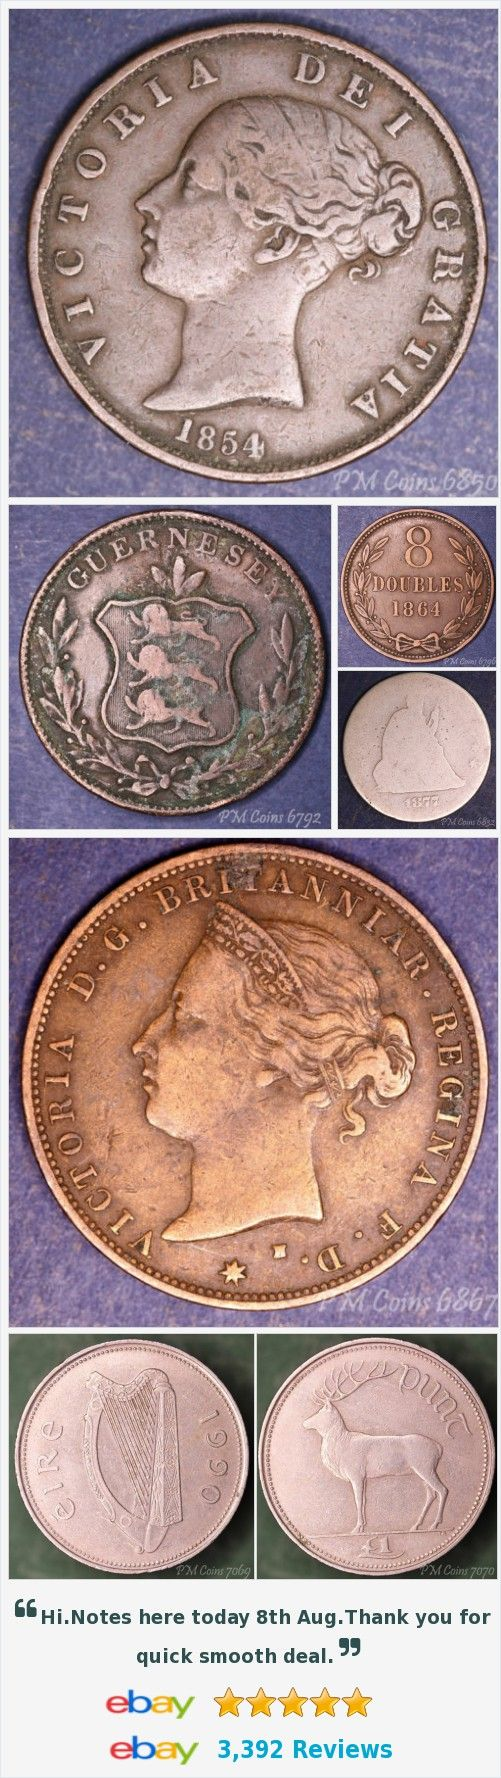 Ireland - Coins and Banknotes, Irish Coins - decimal items in PM Coin Shop store on eBay! http://stores.ebay.co.uk/PM-Coin-Shop/_i.html?rt=nc&_sid=1083015530&_trksid=p4634.c0.m14.l1513&_pgn=15